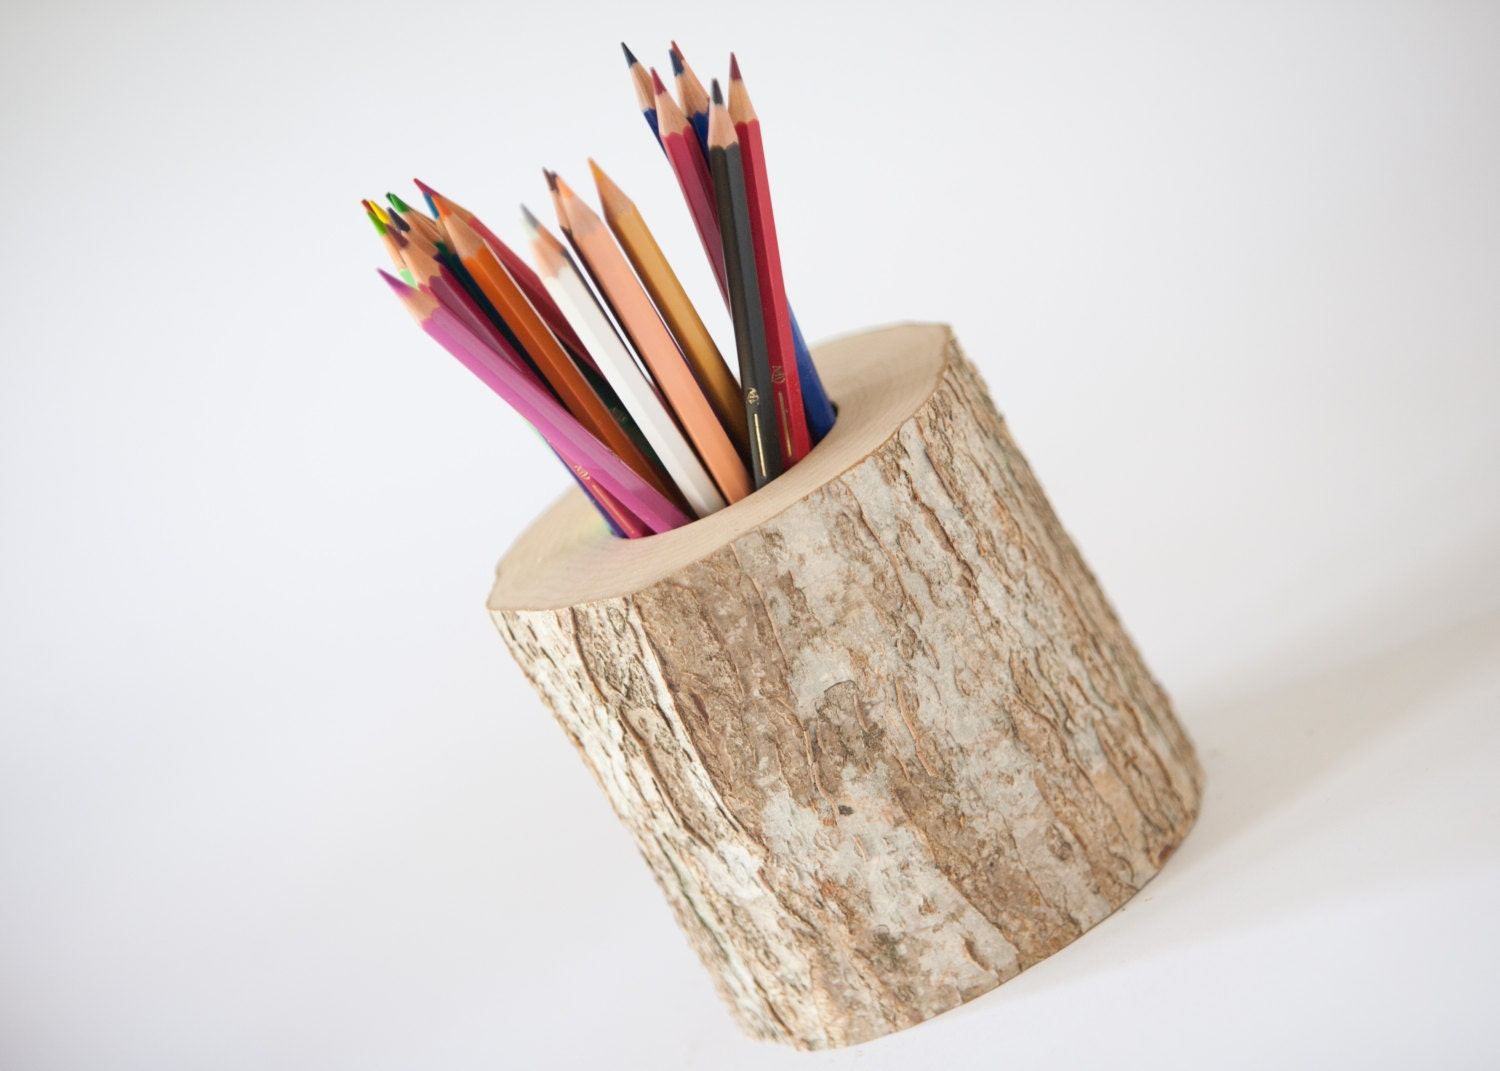 Wooden pen and pencil holder home decor rustic by DINDINTOYS